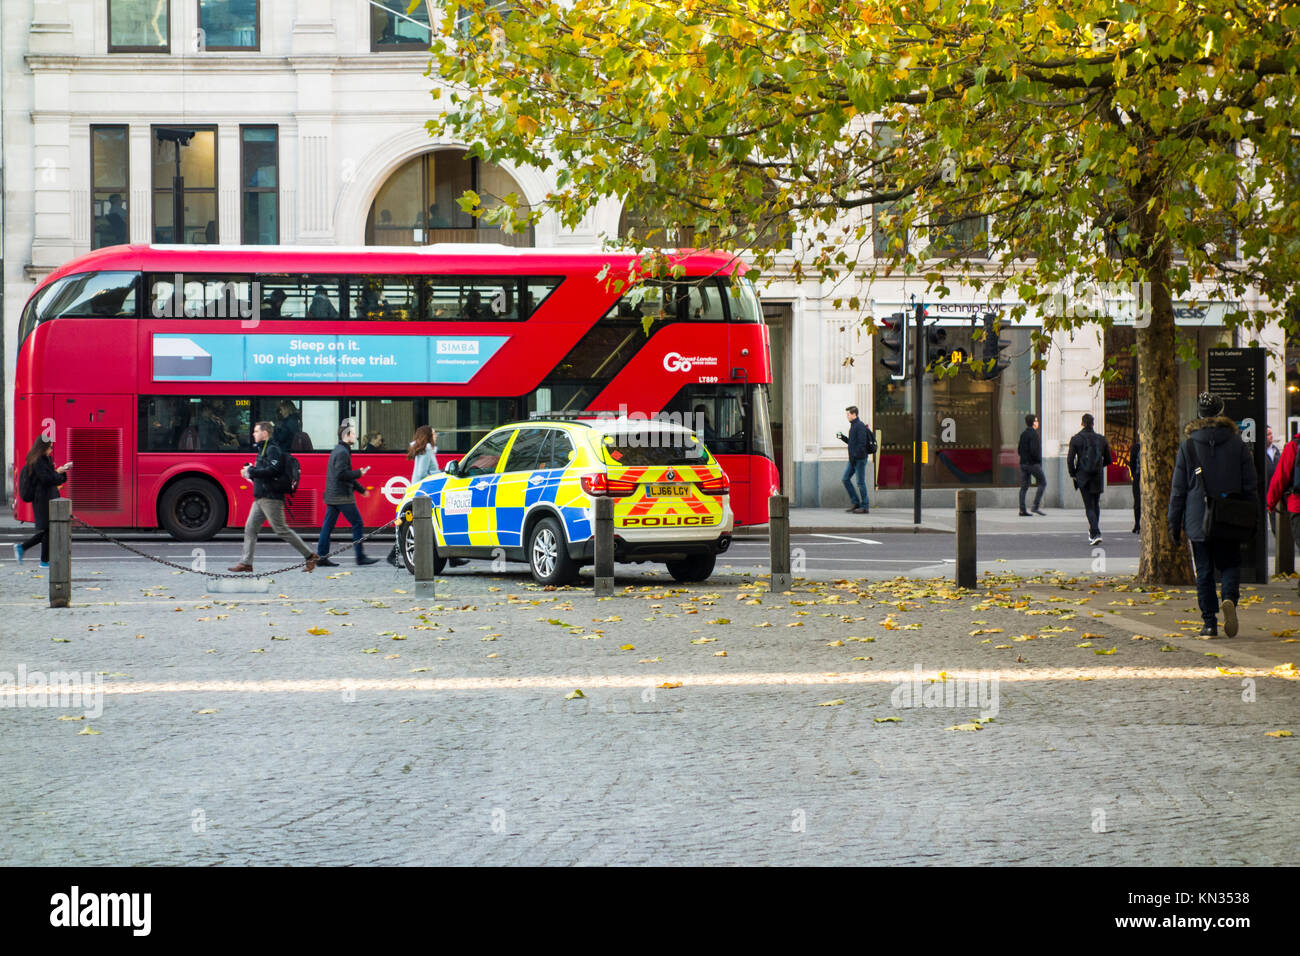 City of London police vehicle parked in St Paul's Churchyard, London, UK - Stock Image